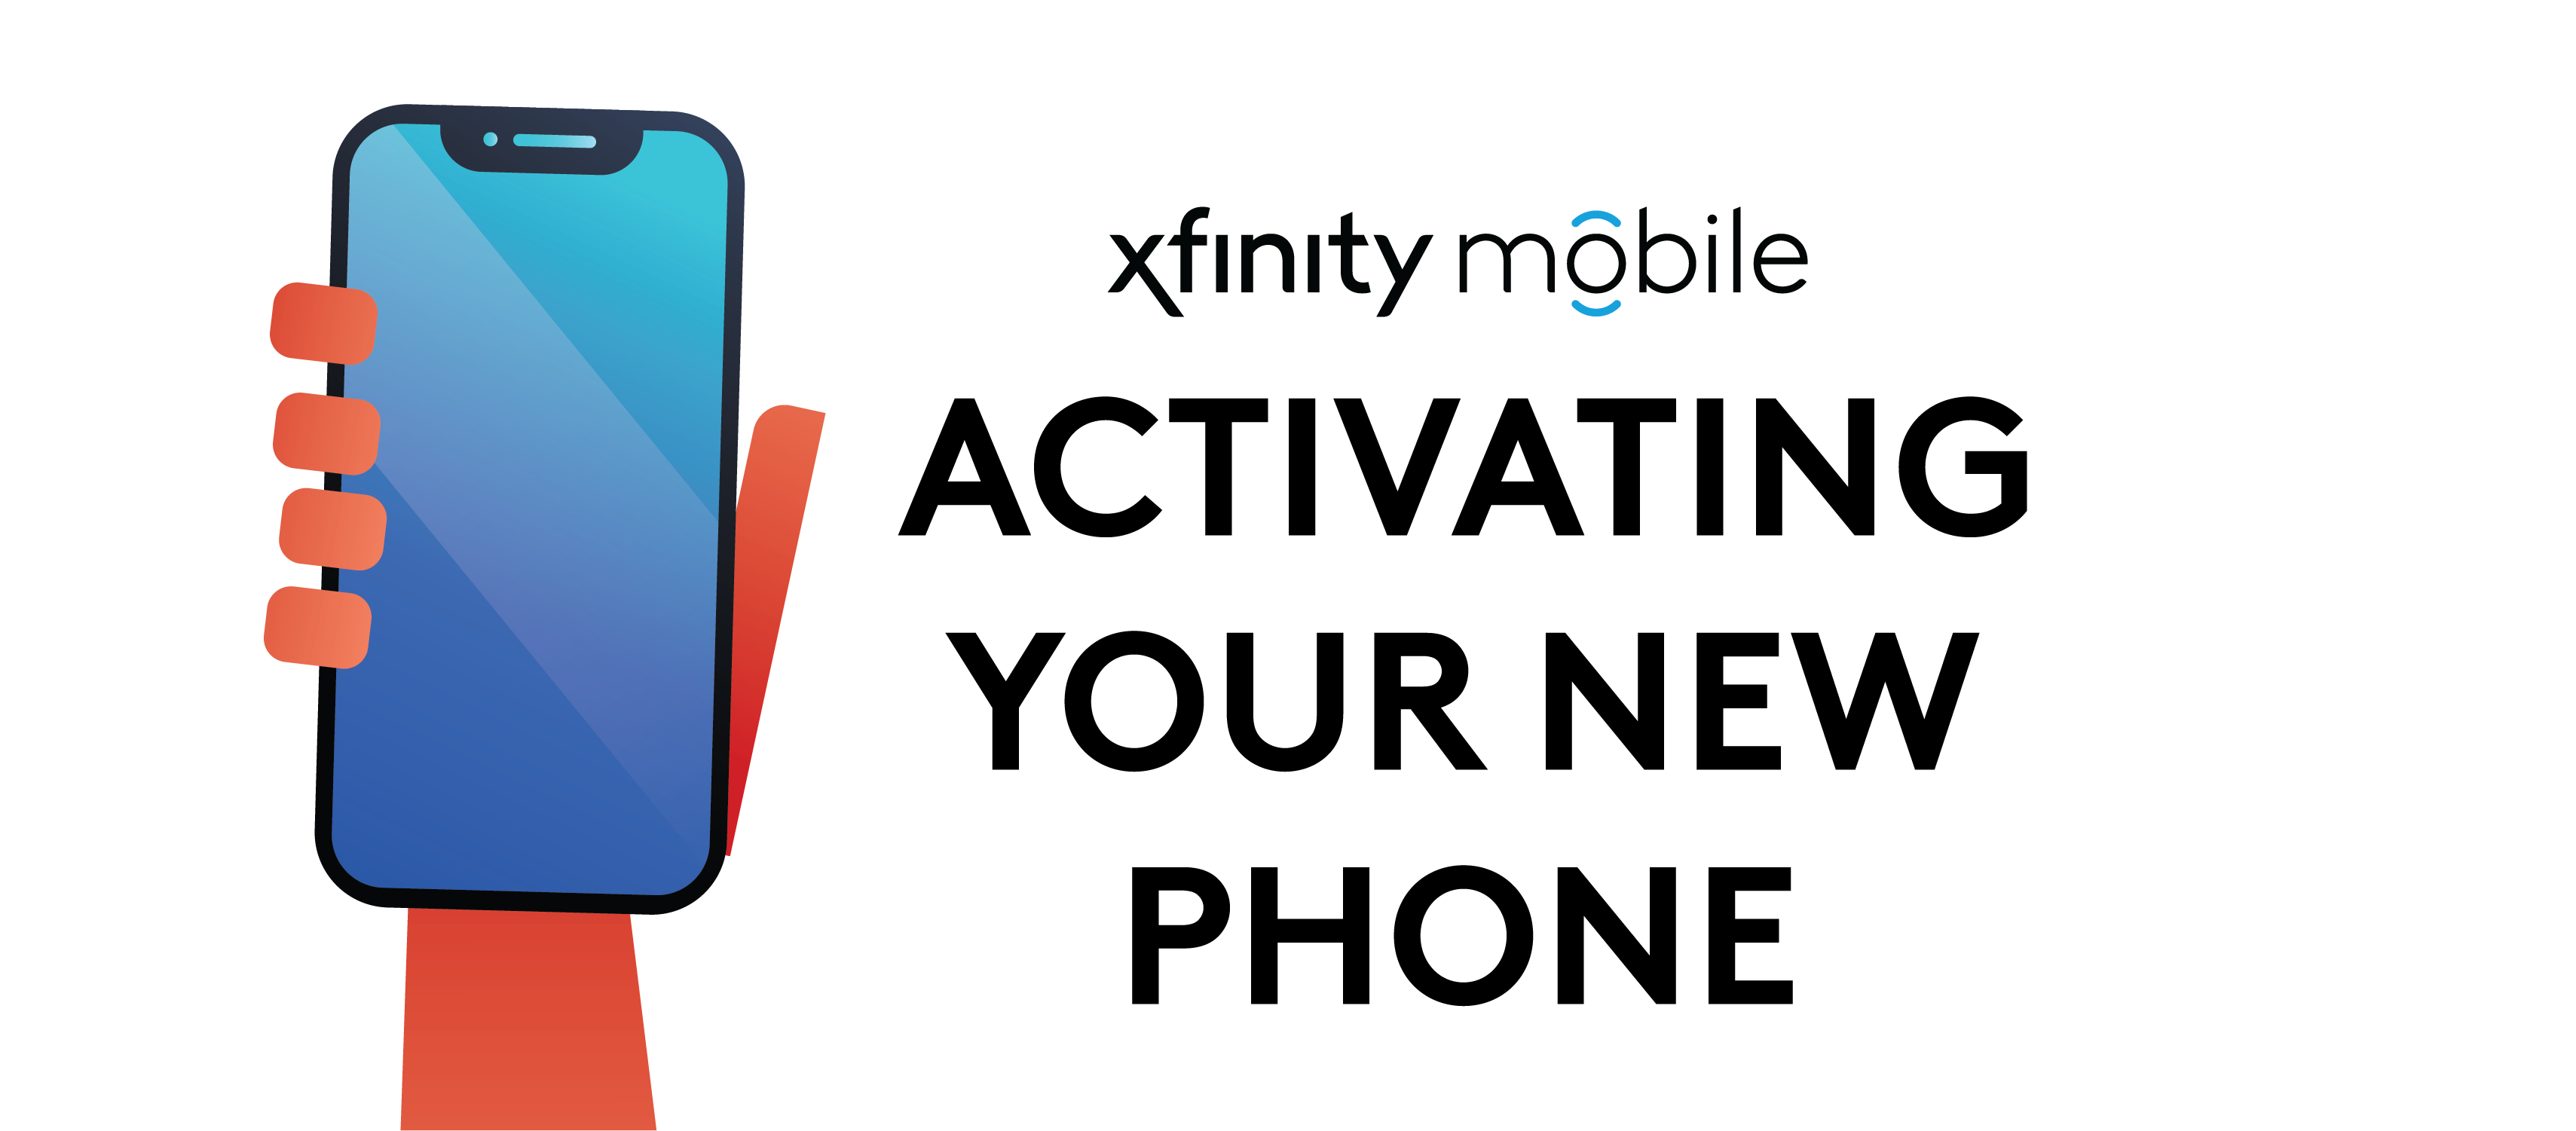 Xfinity Mobile New Phone Activation